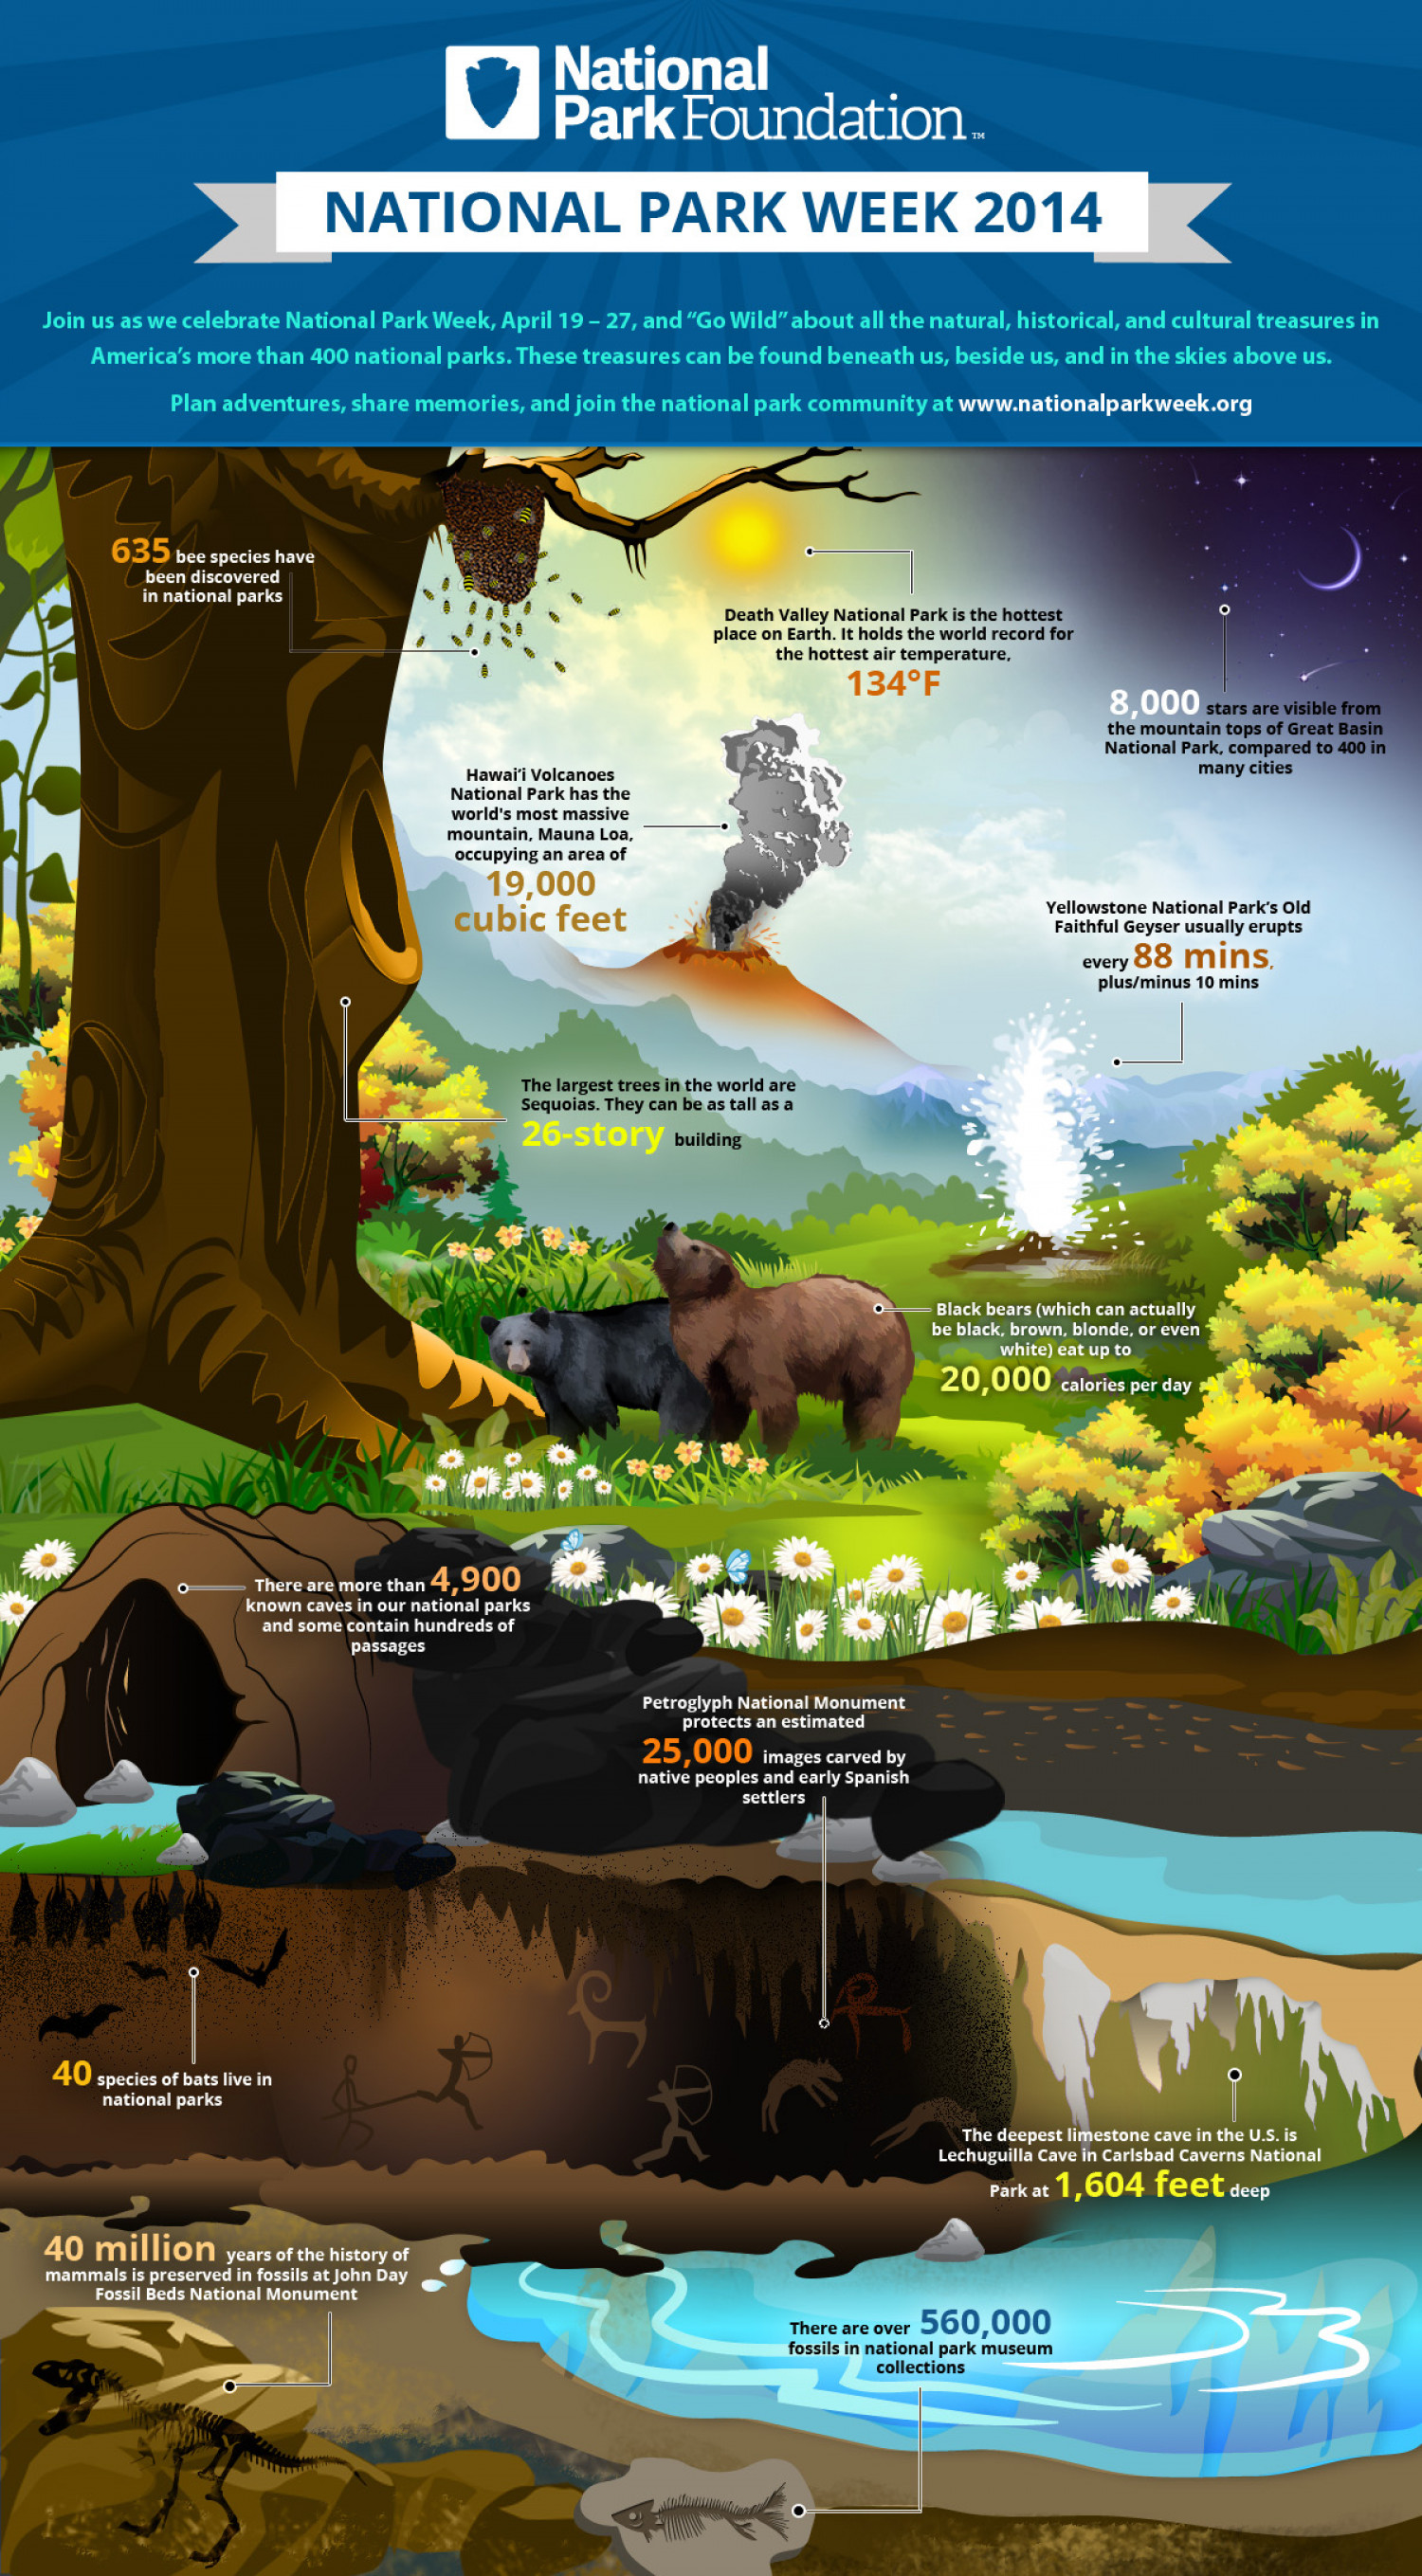 National Park Week 2014 Infographic